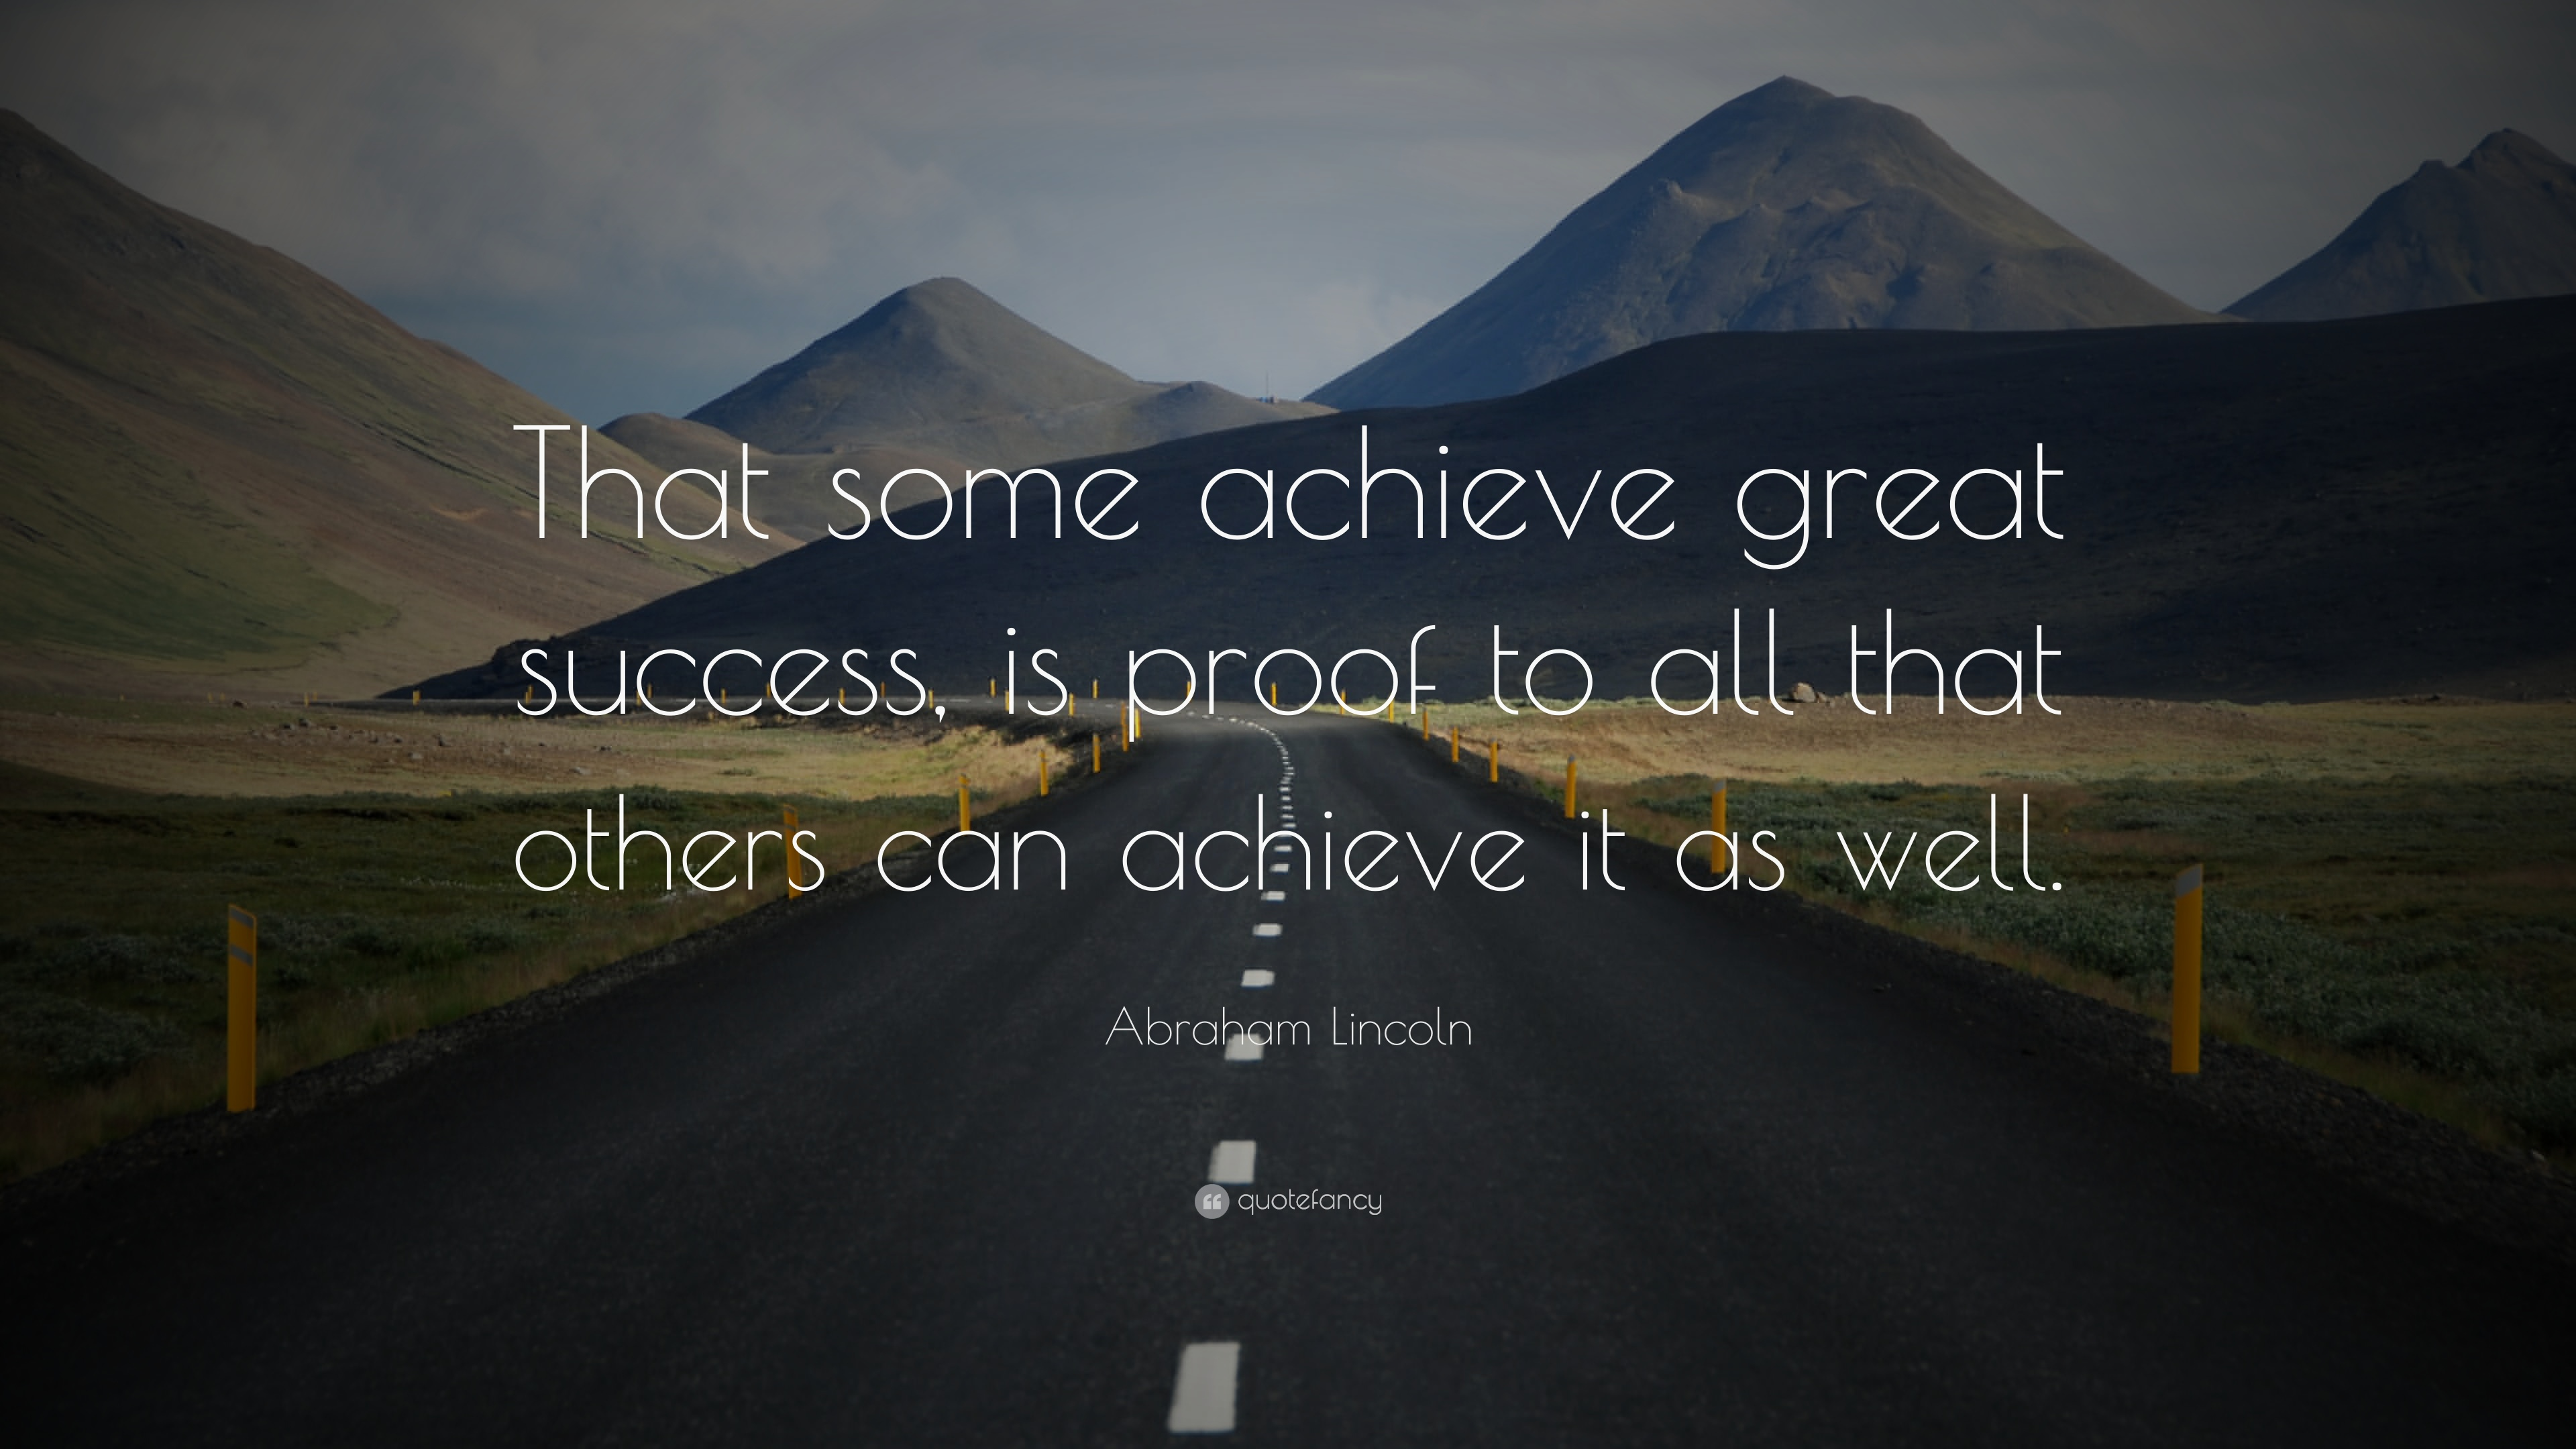 can women achieve success in the The success principles how to get transform your life beyond your wildest dreams  most successful men and women taken together and practiced every day, these principles will  you can achieve any success you seek, including inner peace jack has written the road map.